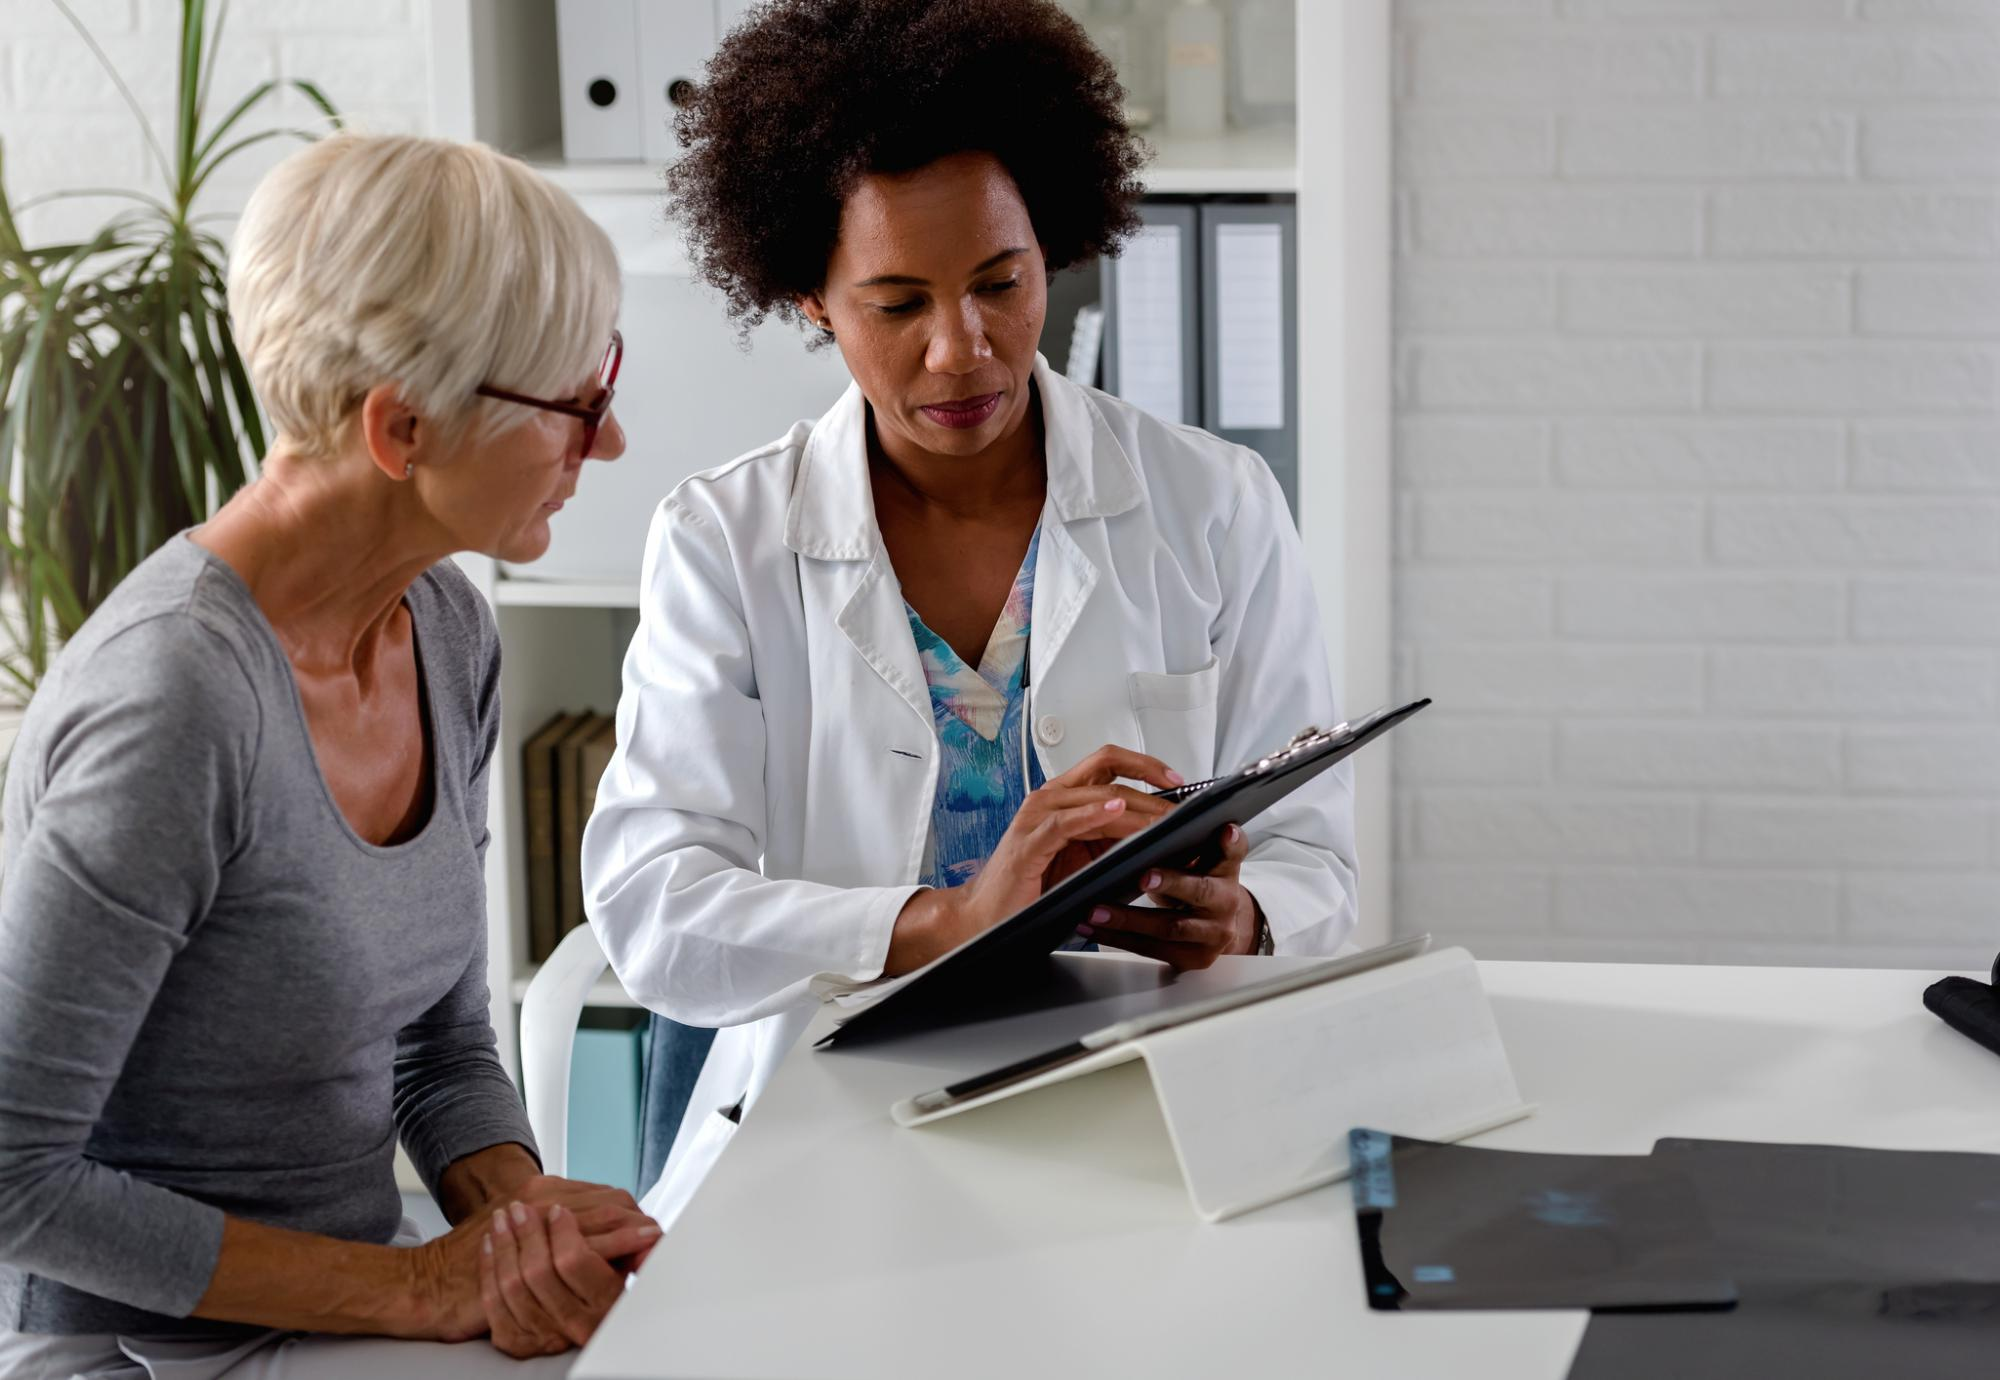 Female doctor discusses a diagnosis with a patient